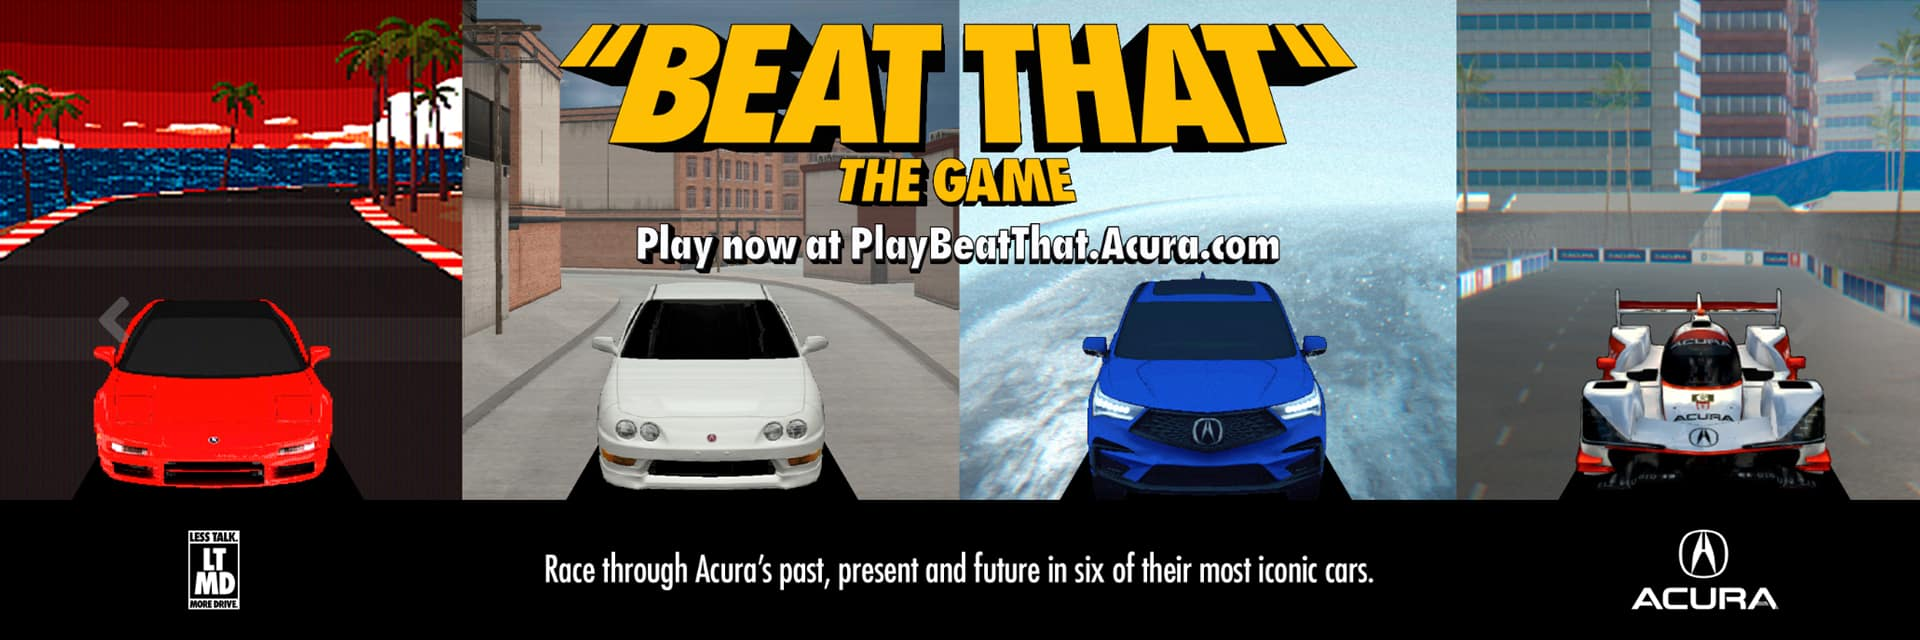 Play beat that by Acura